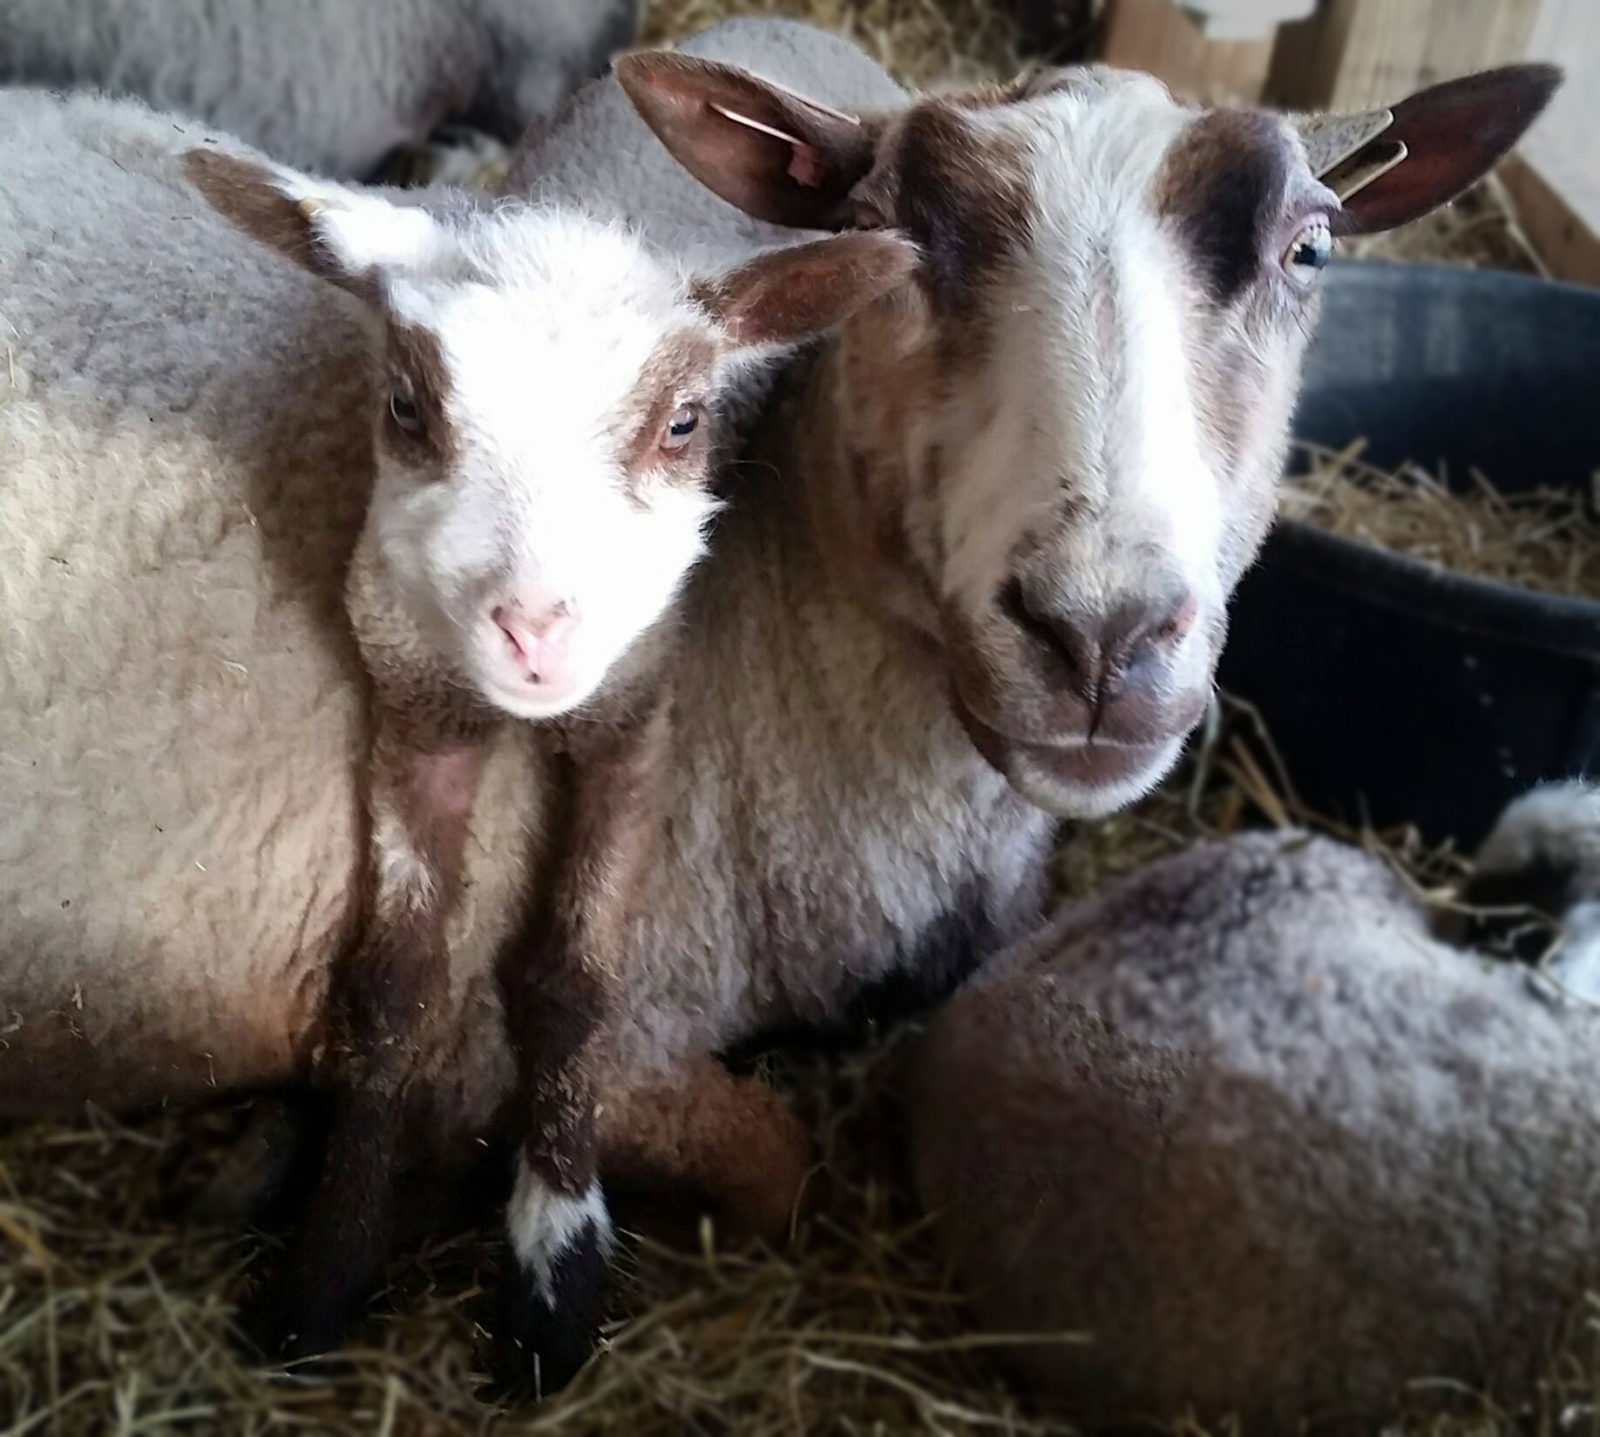 Mom and baby lamb